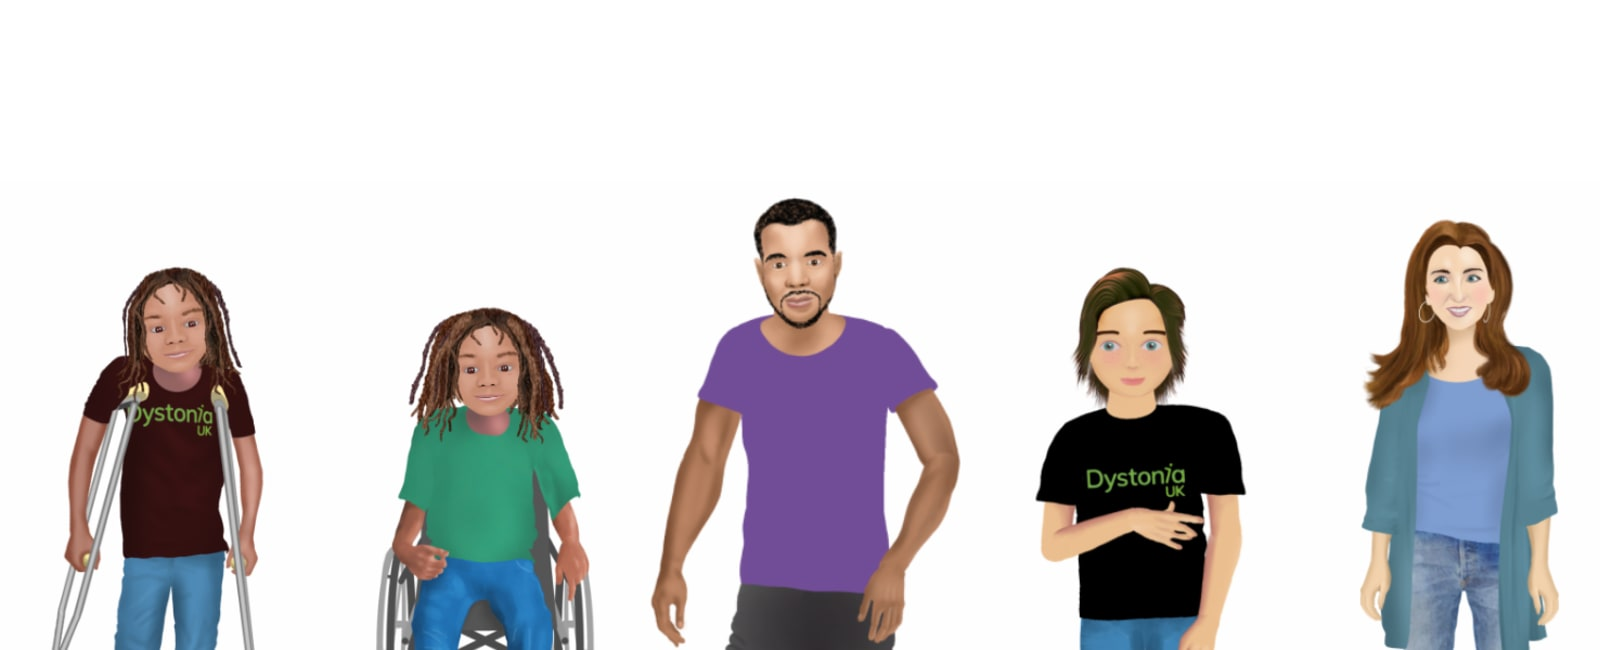 Dystonia Animated